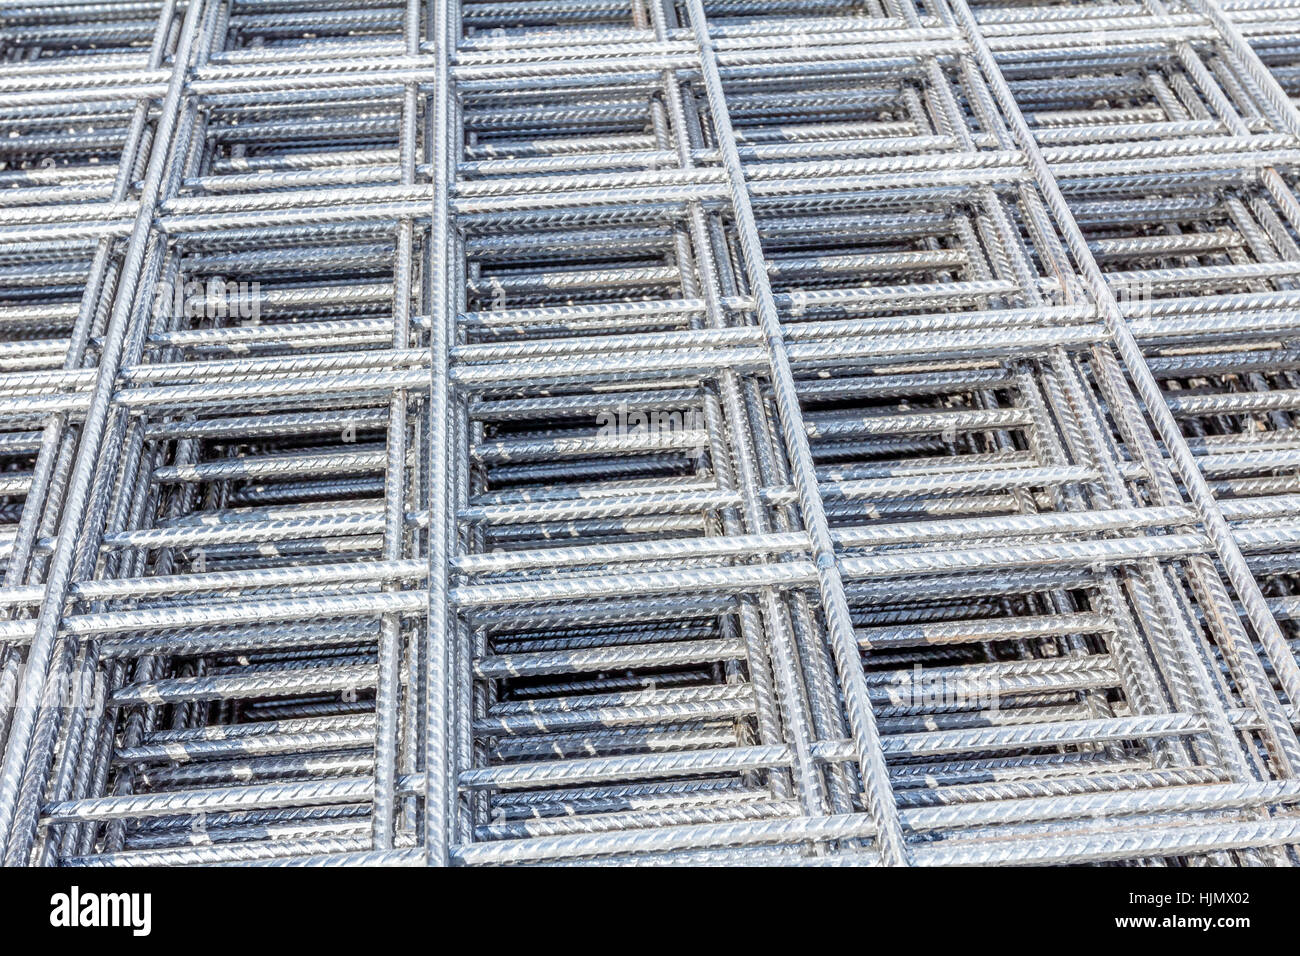 Stack Of Concrete Reinforcing Mesh Stock Photos & Stack Of Concrete ...